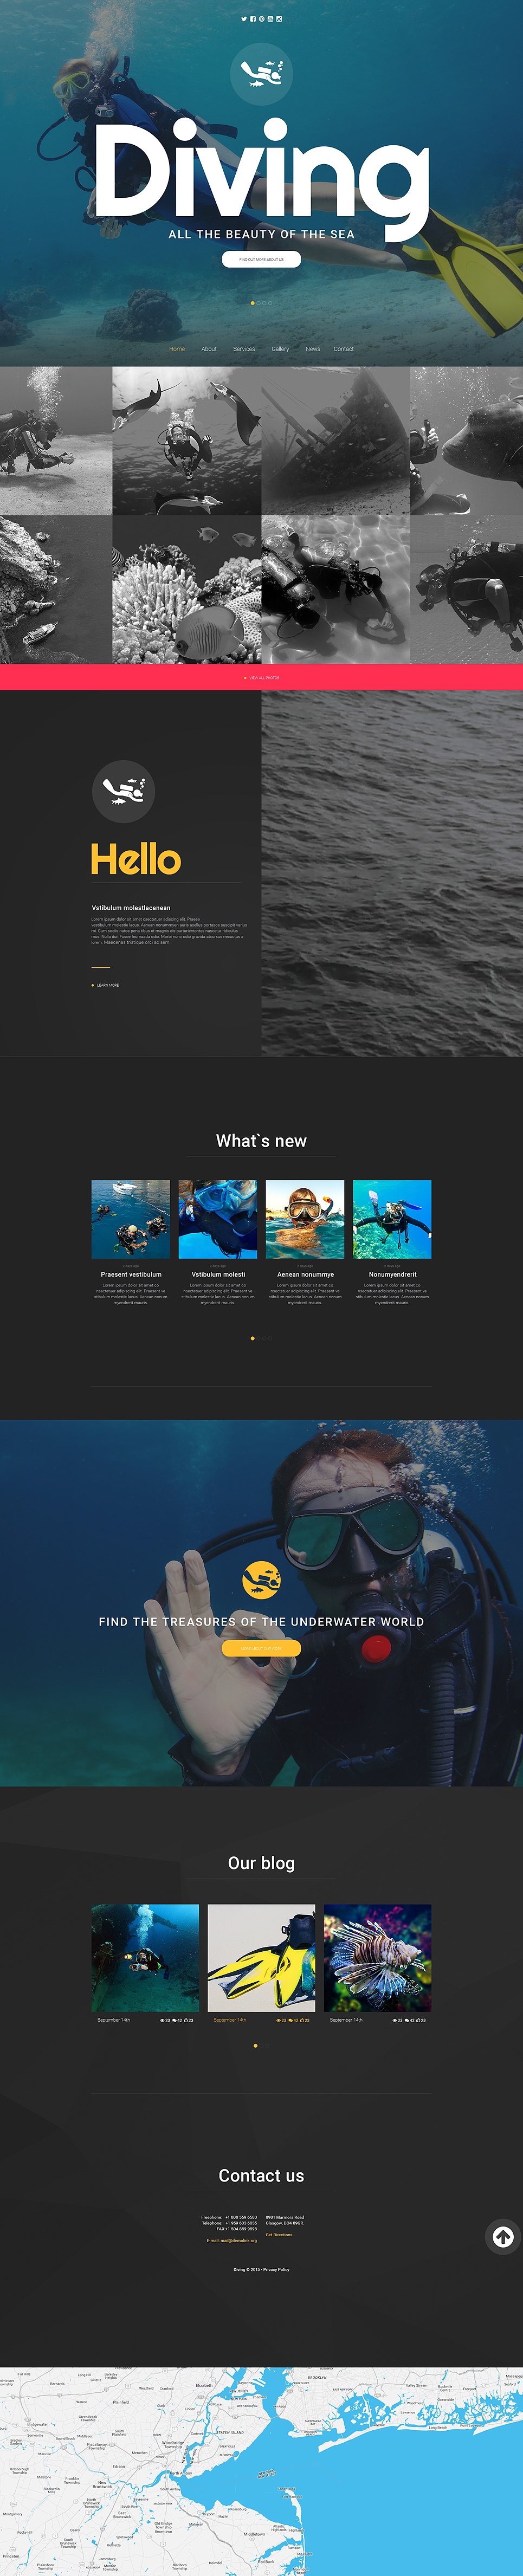 diving website template